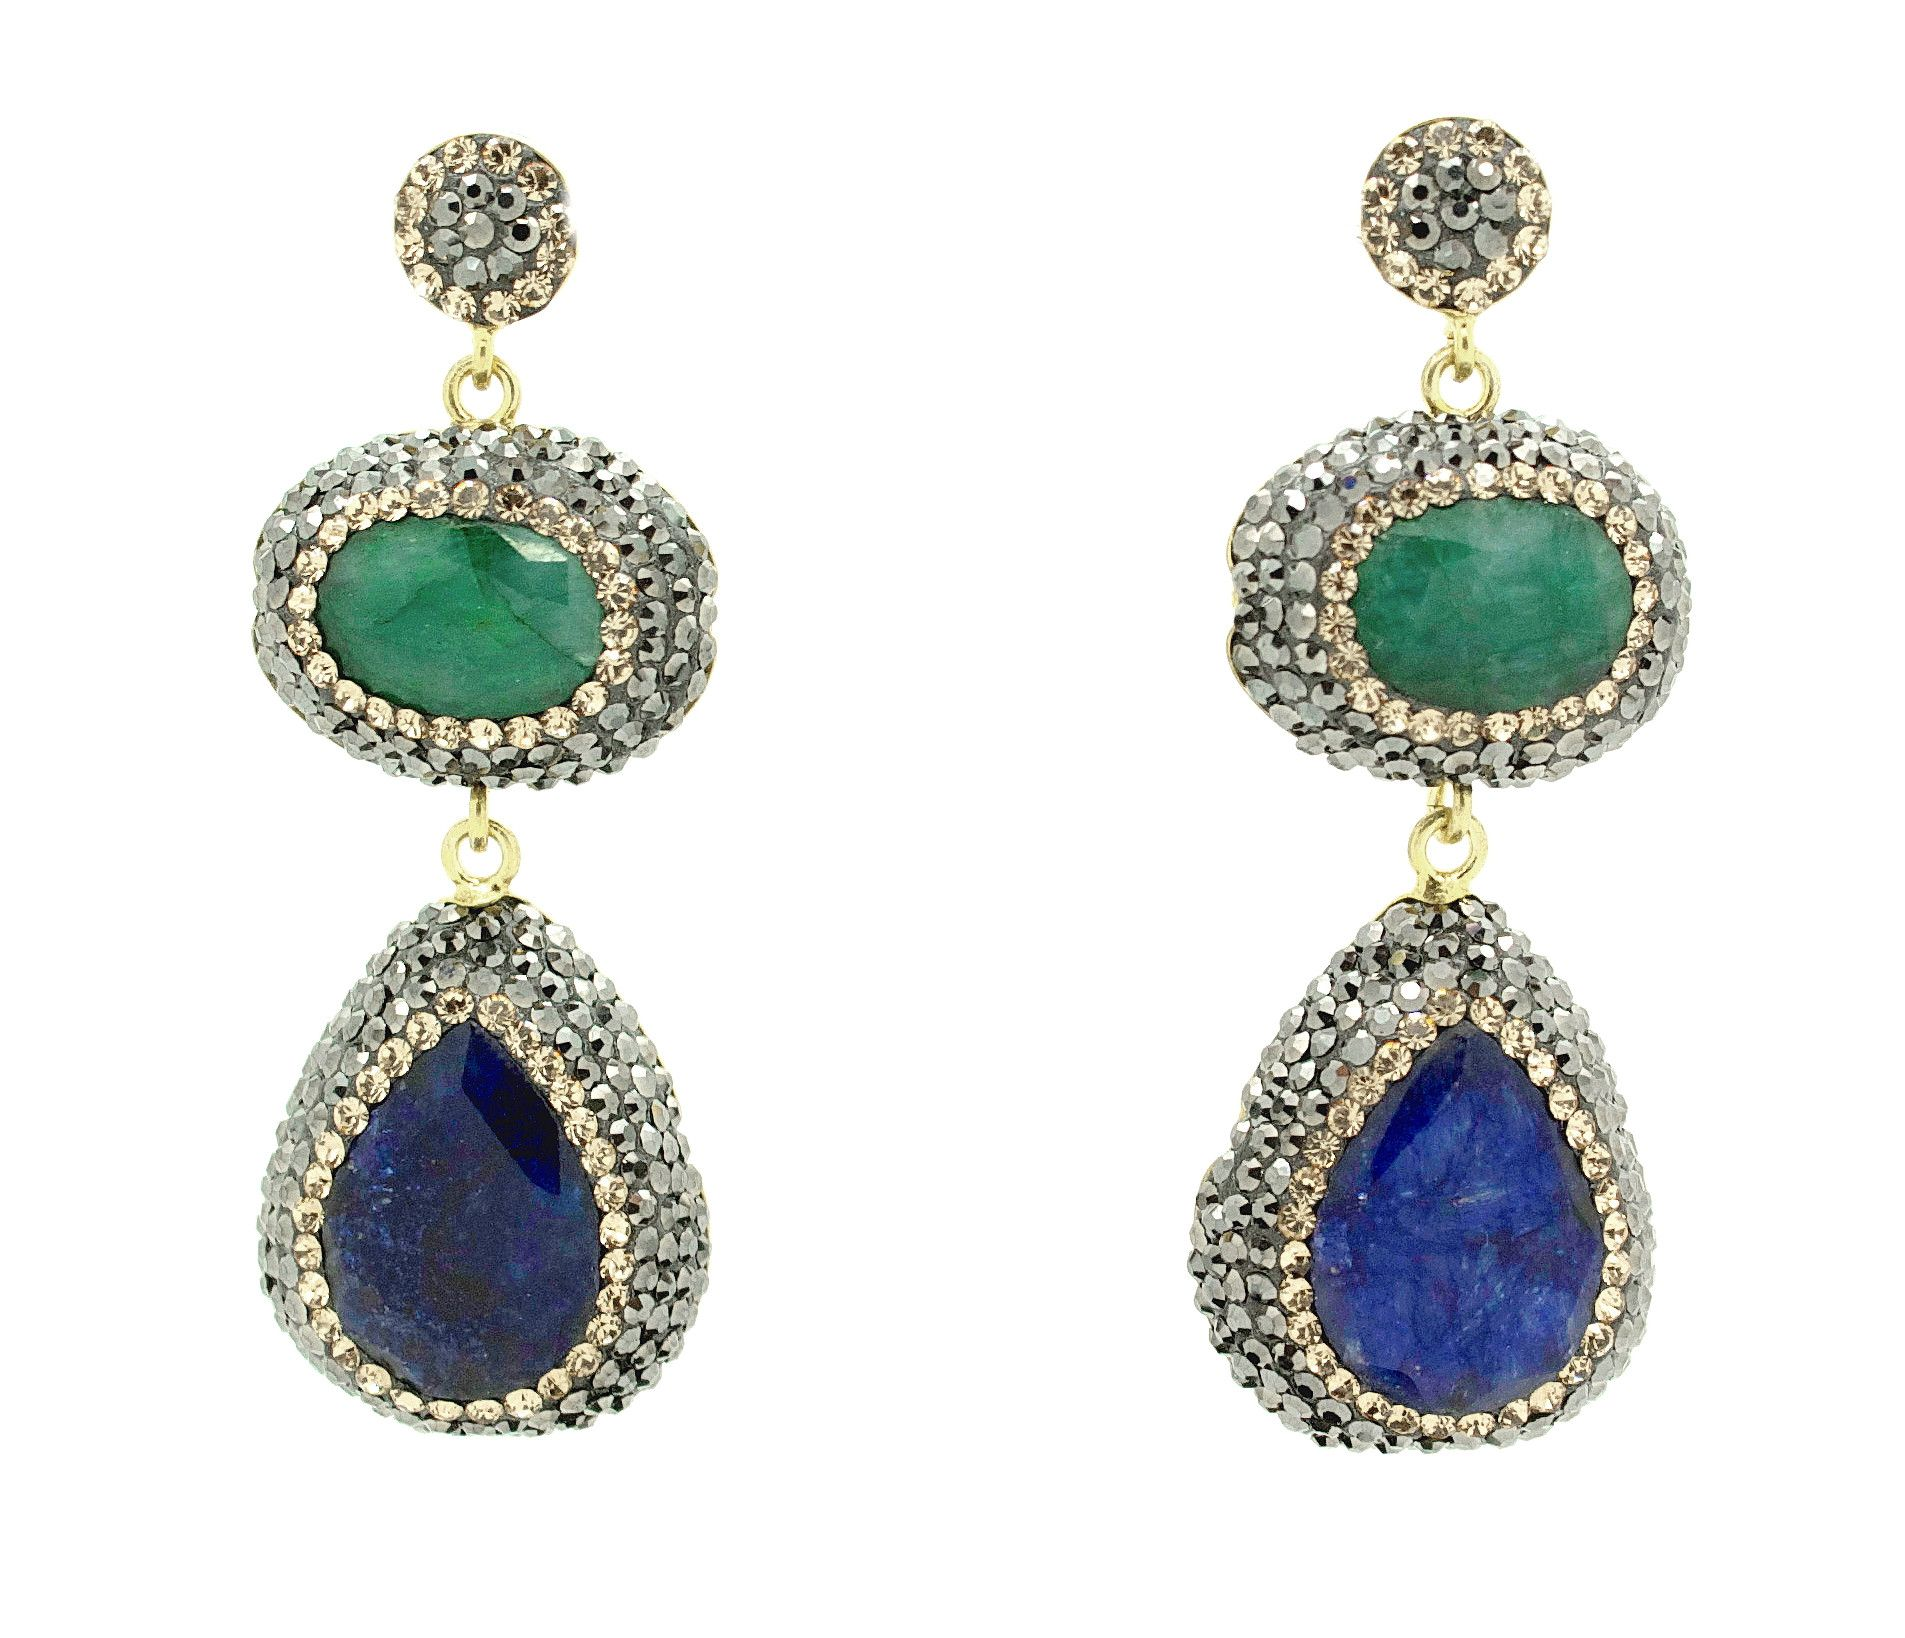 buy daily wear rock how blog to jewelry dazzling tips earrings